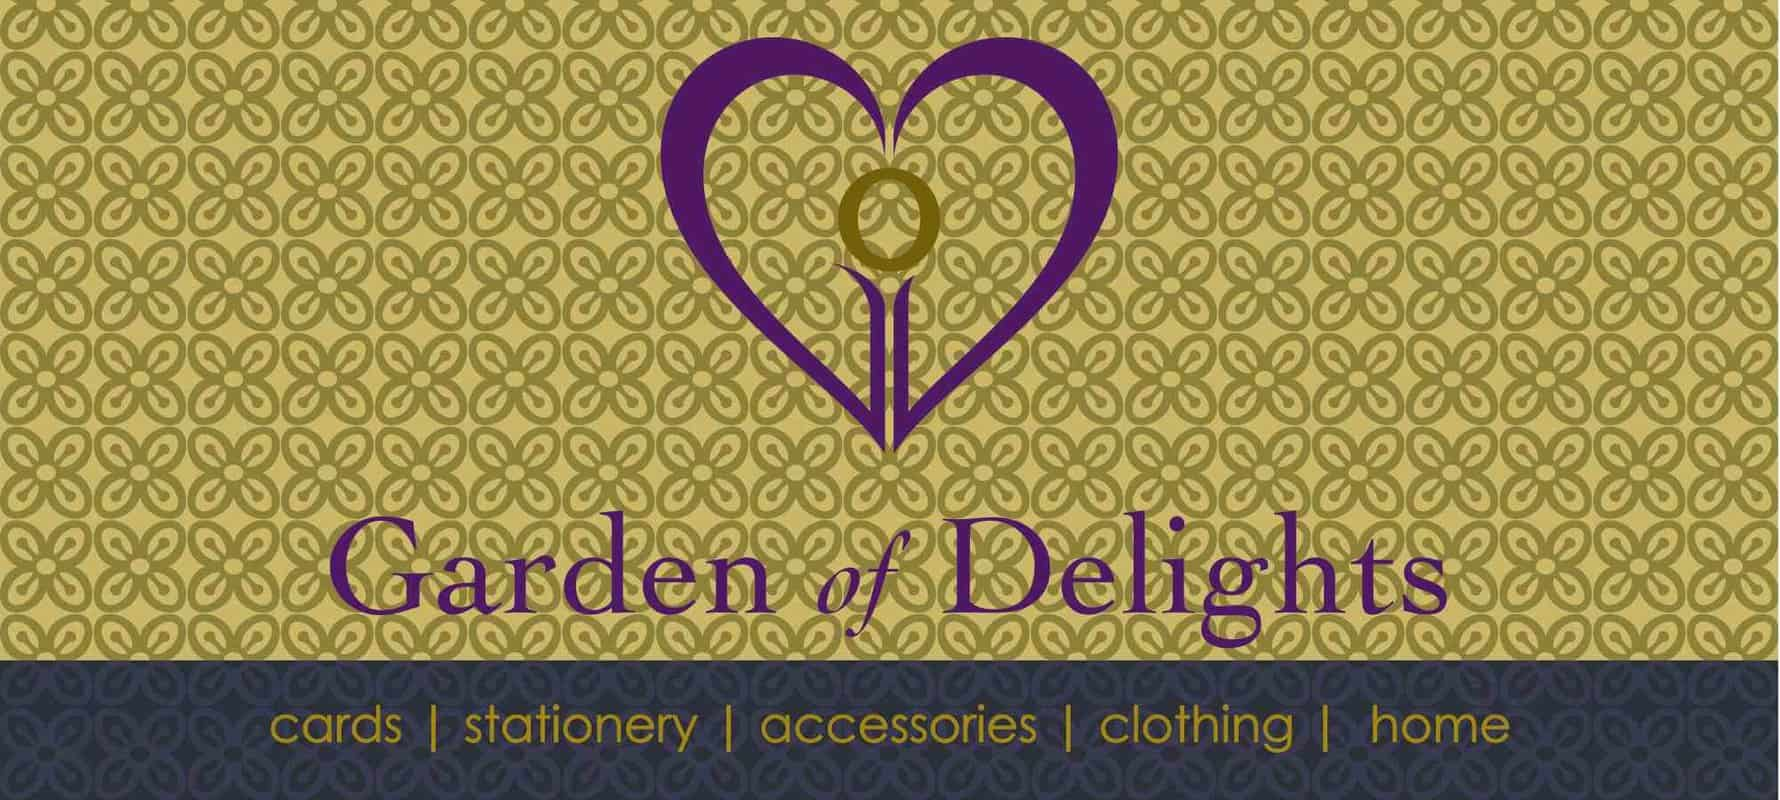 Garden of Delights, Home and Gifts